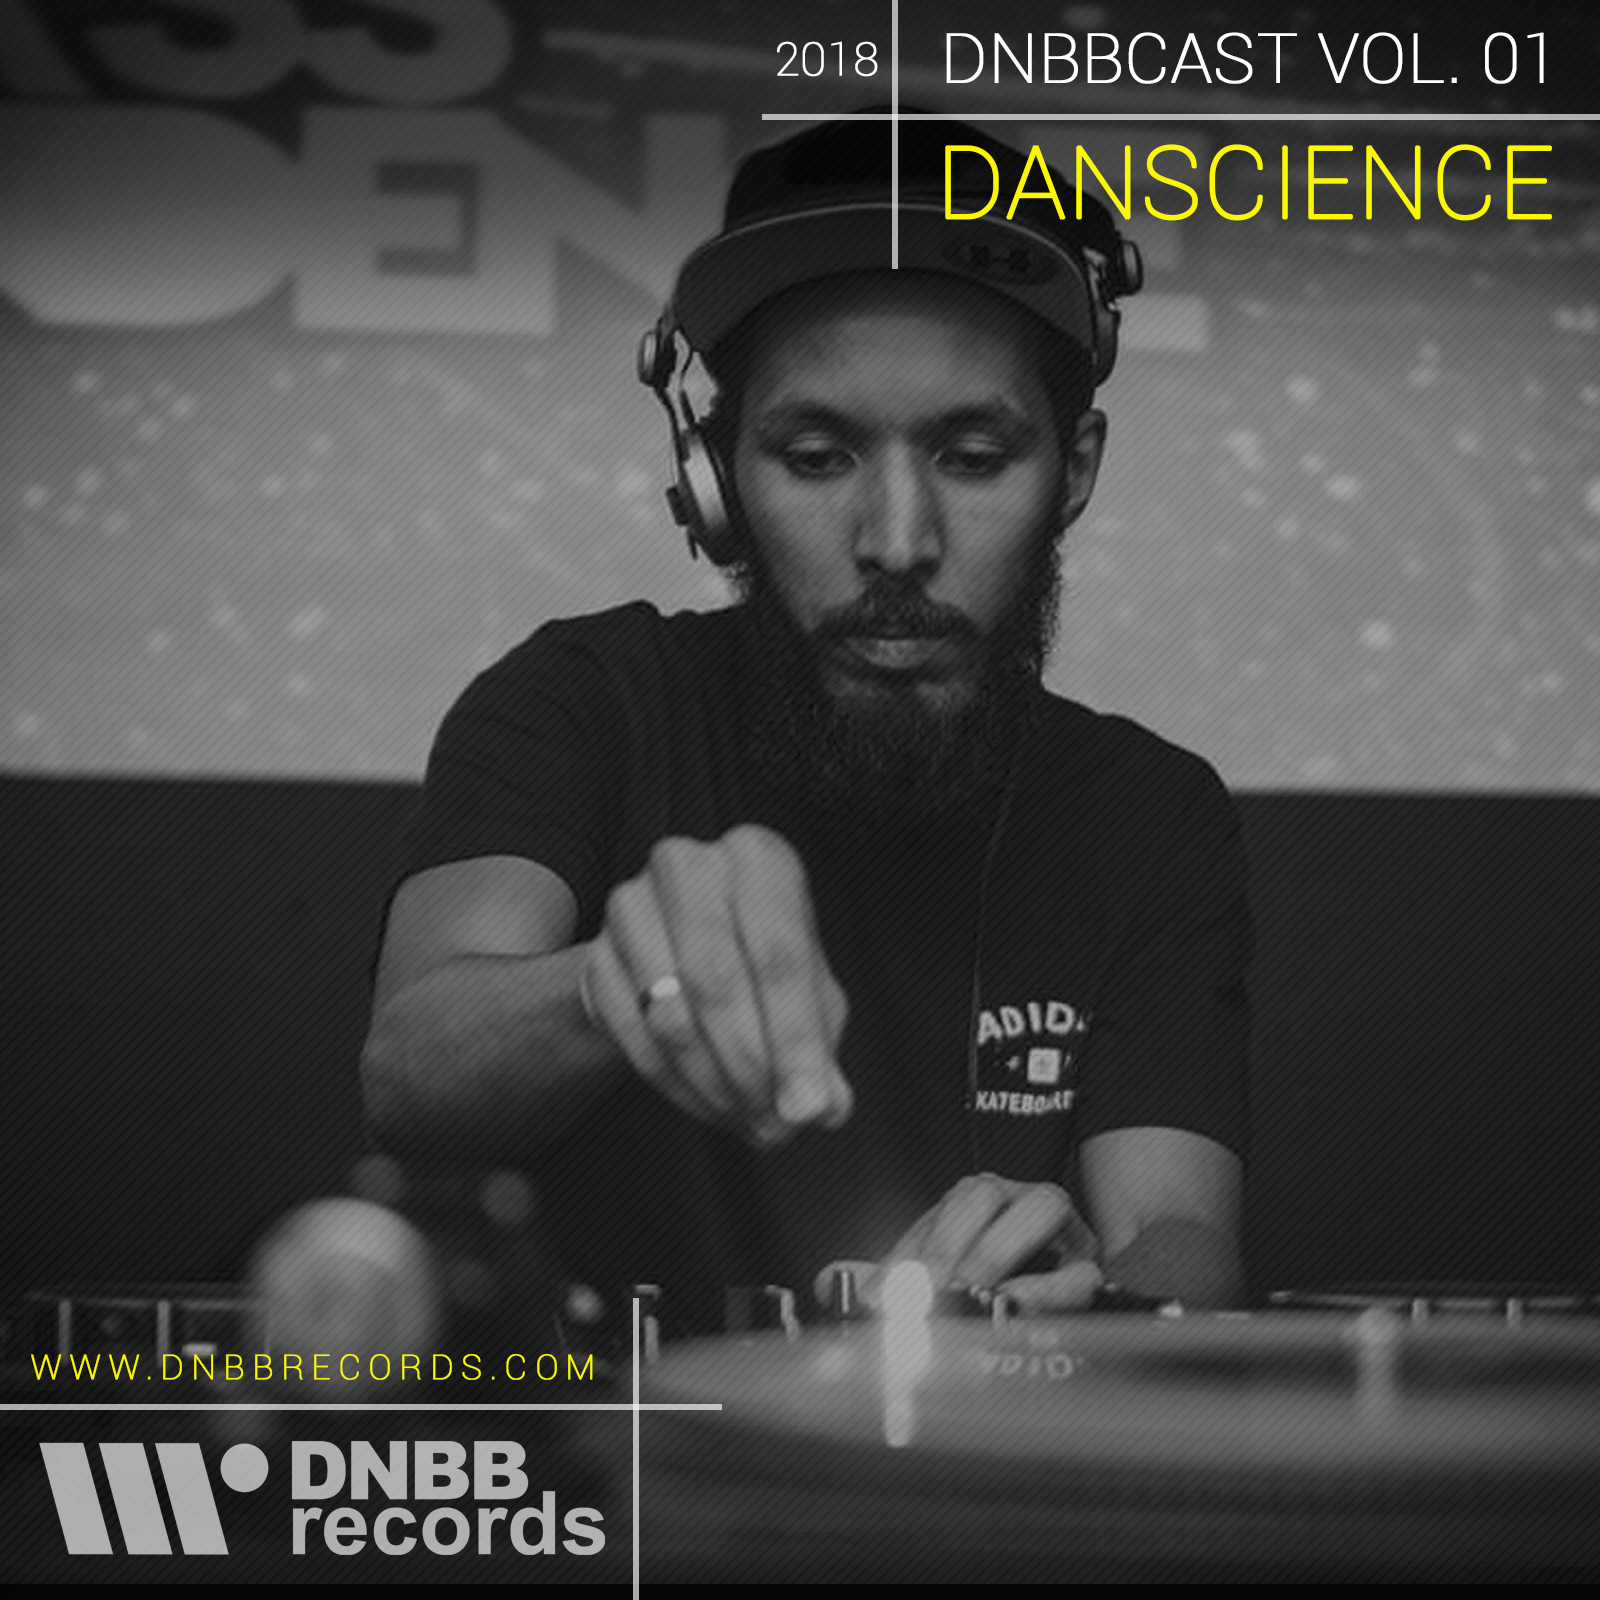 DNBBCAST 01/2018 by Danscience